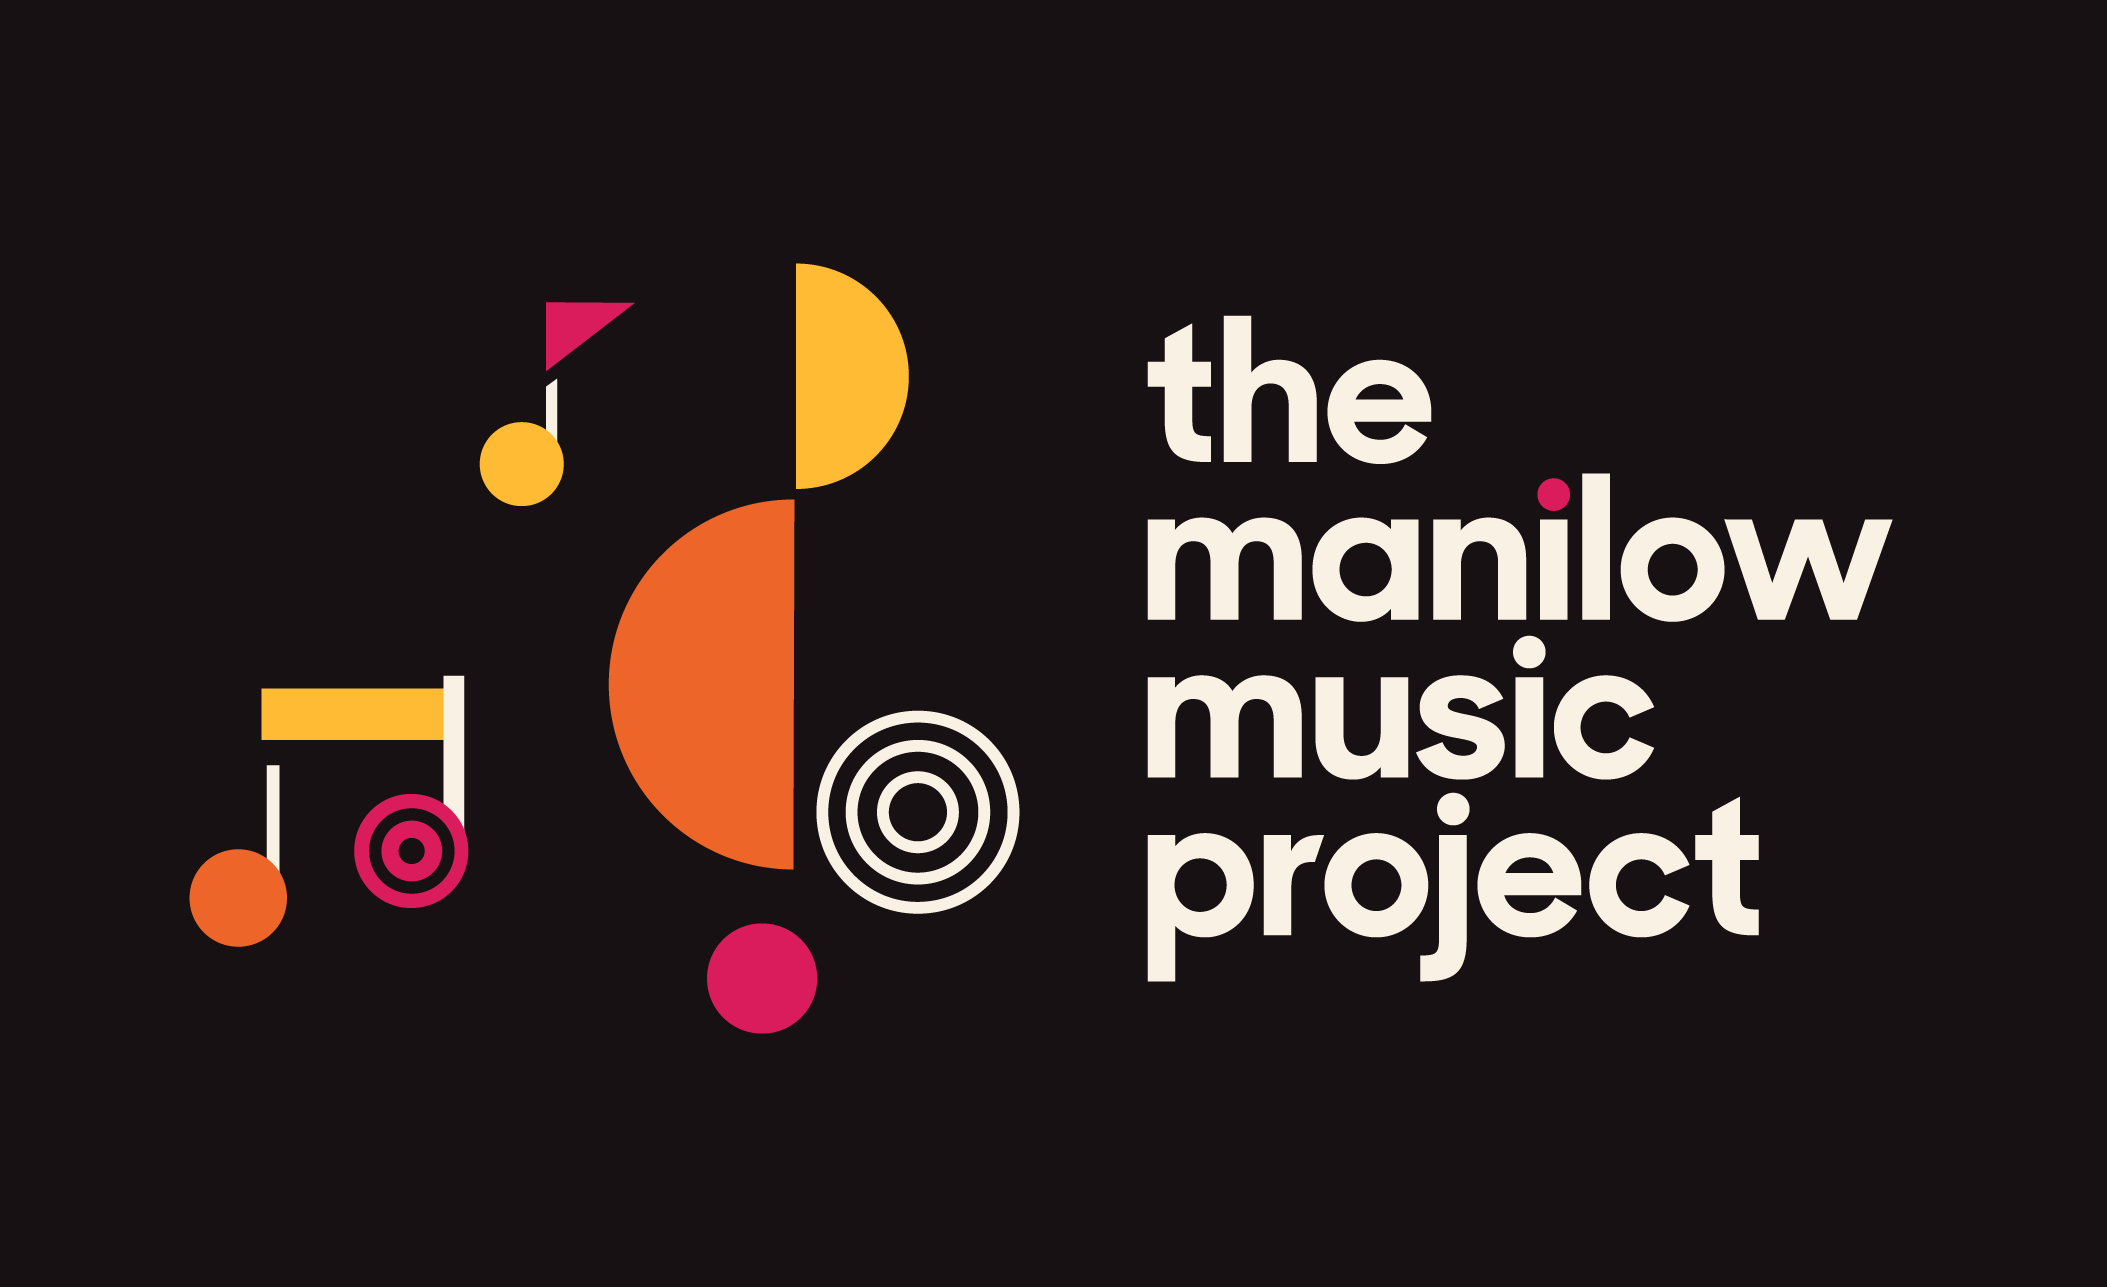 About - The Manilow Music Project